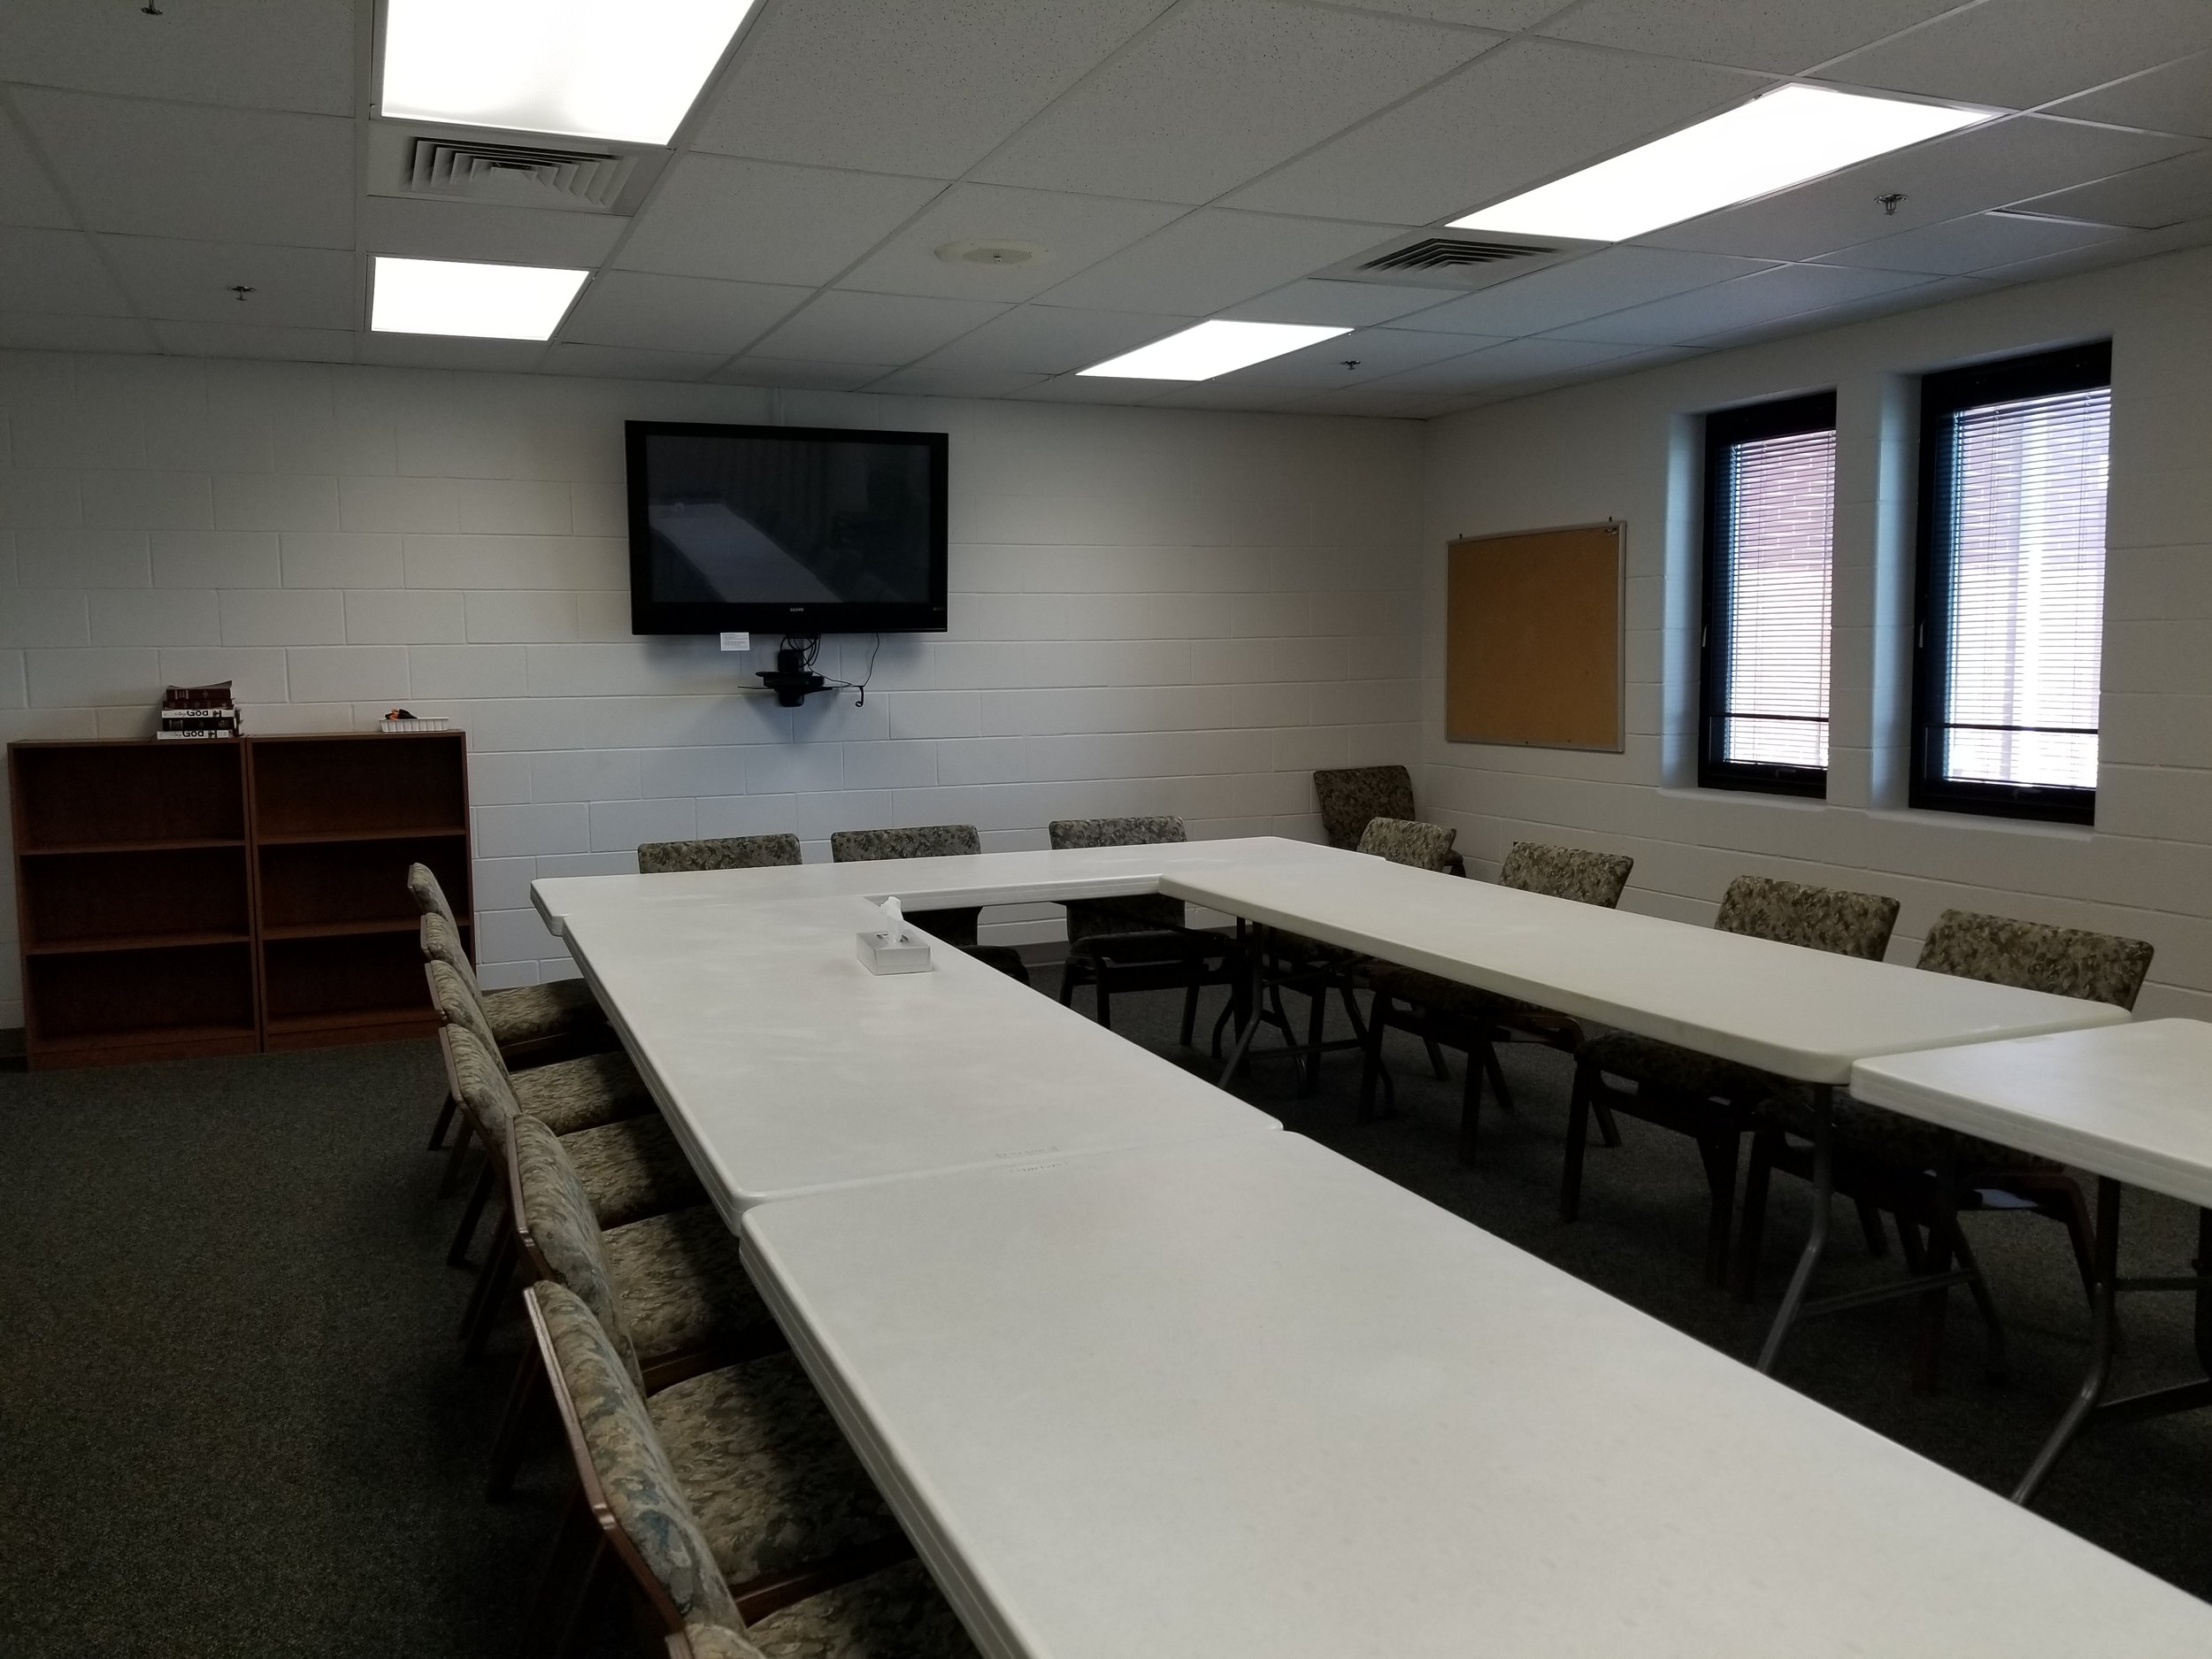 The Education Wing offers rooms of various sizes for classes and activities.